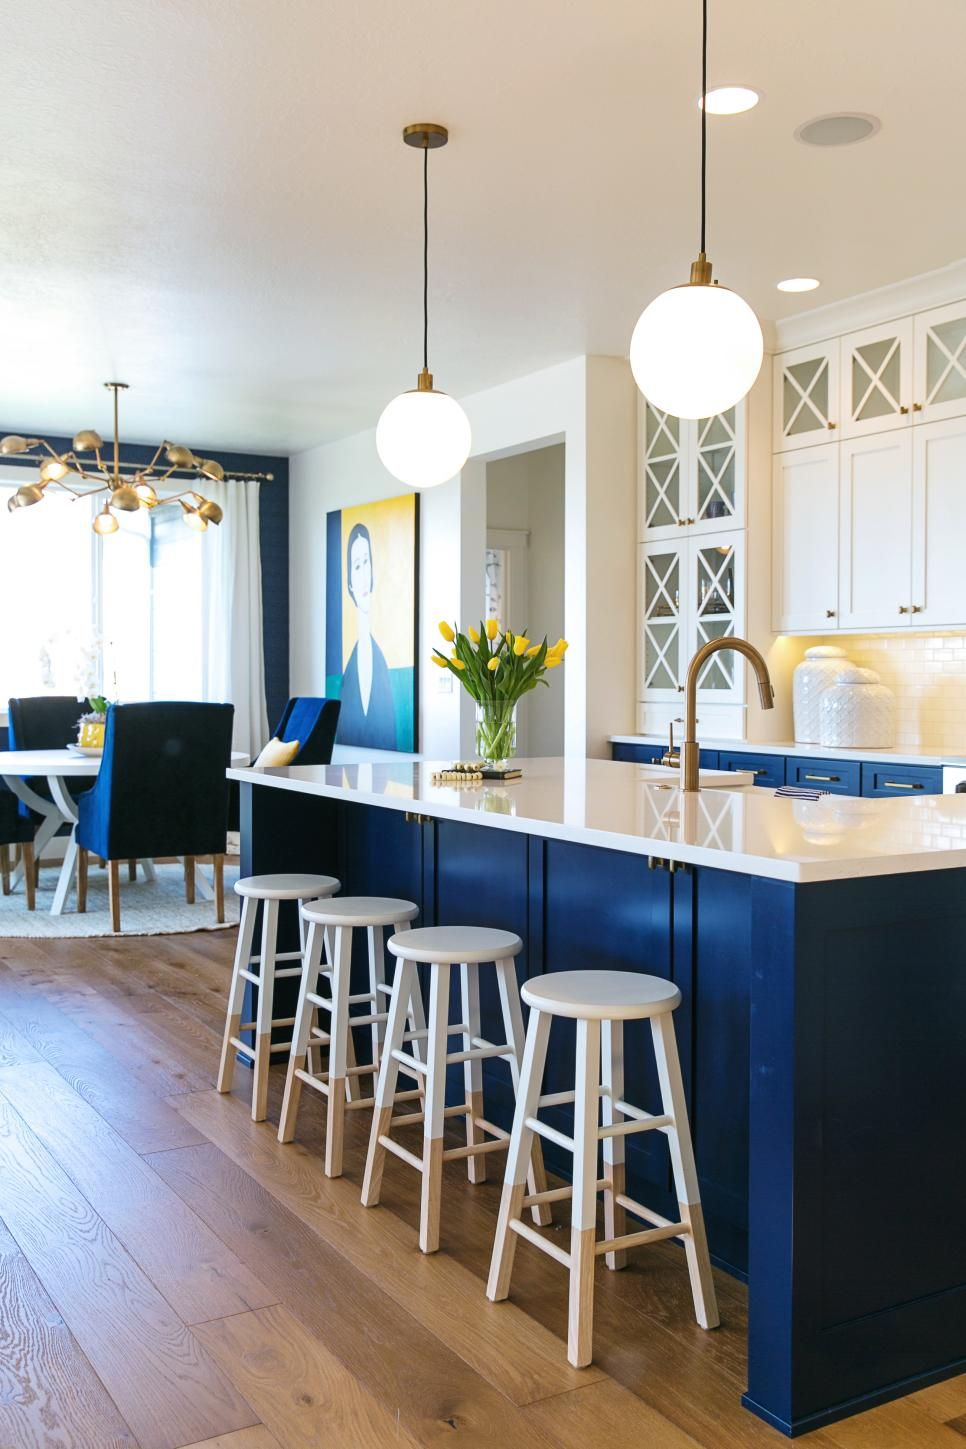 Blue and white kitchen with kitchen island stools and kitchen table with chairs